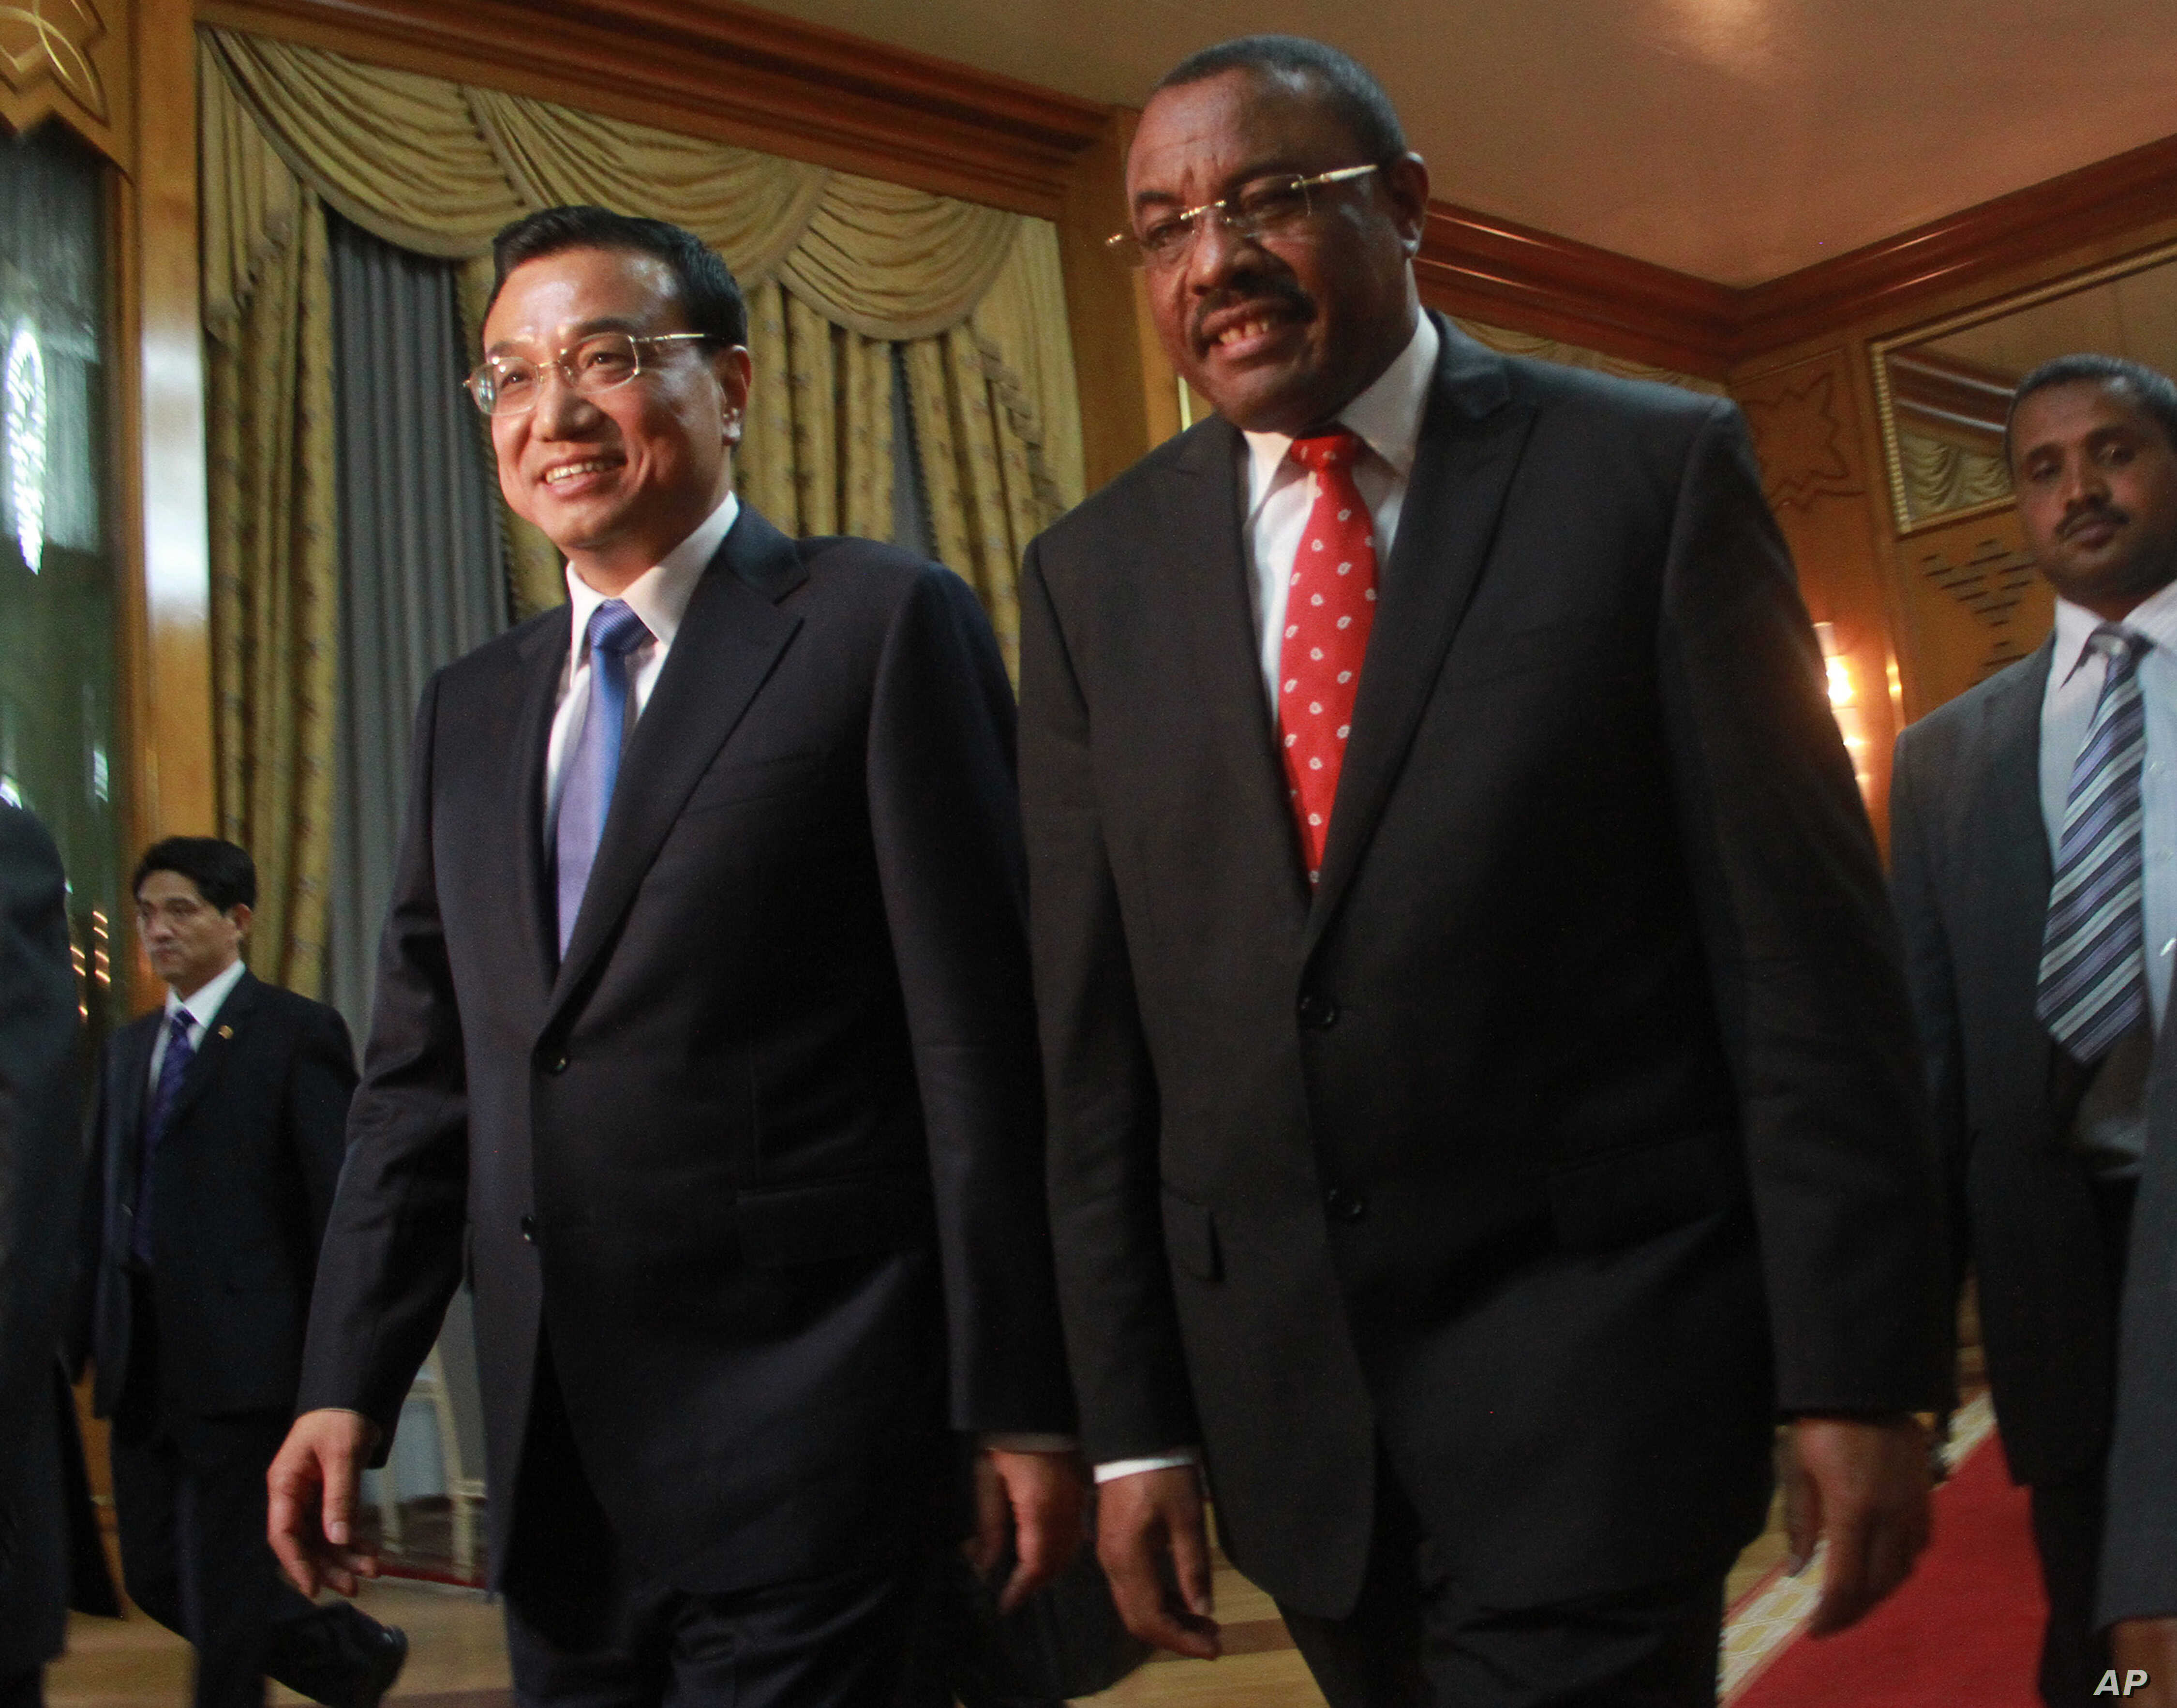 Chinese Premier Li Keqiang, left, is welcomed by Ethiopian Premier Hailemariam Desalegn at the Ethiopian Presidential Palace, in Addis Ababa, Ethiopia, May 4, 2014.